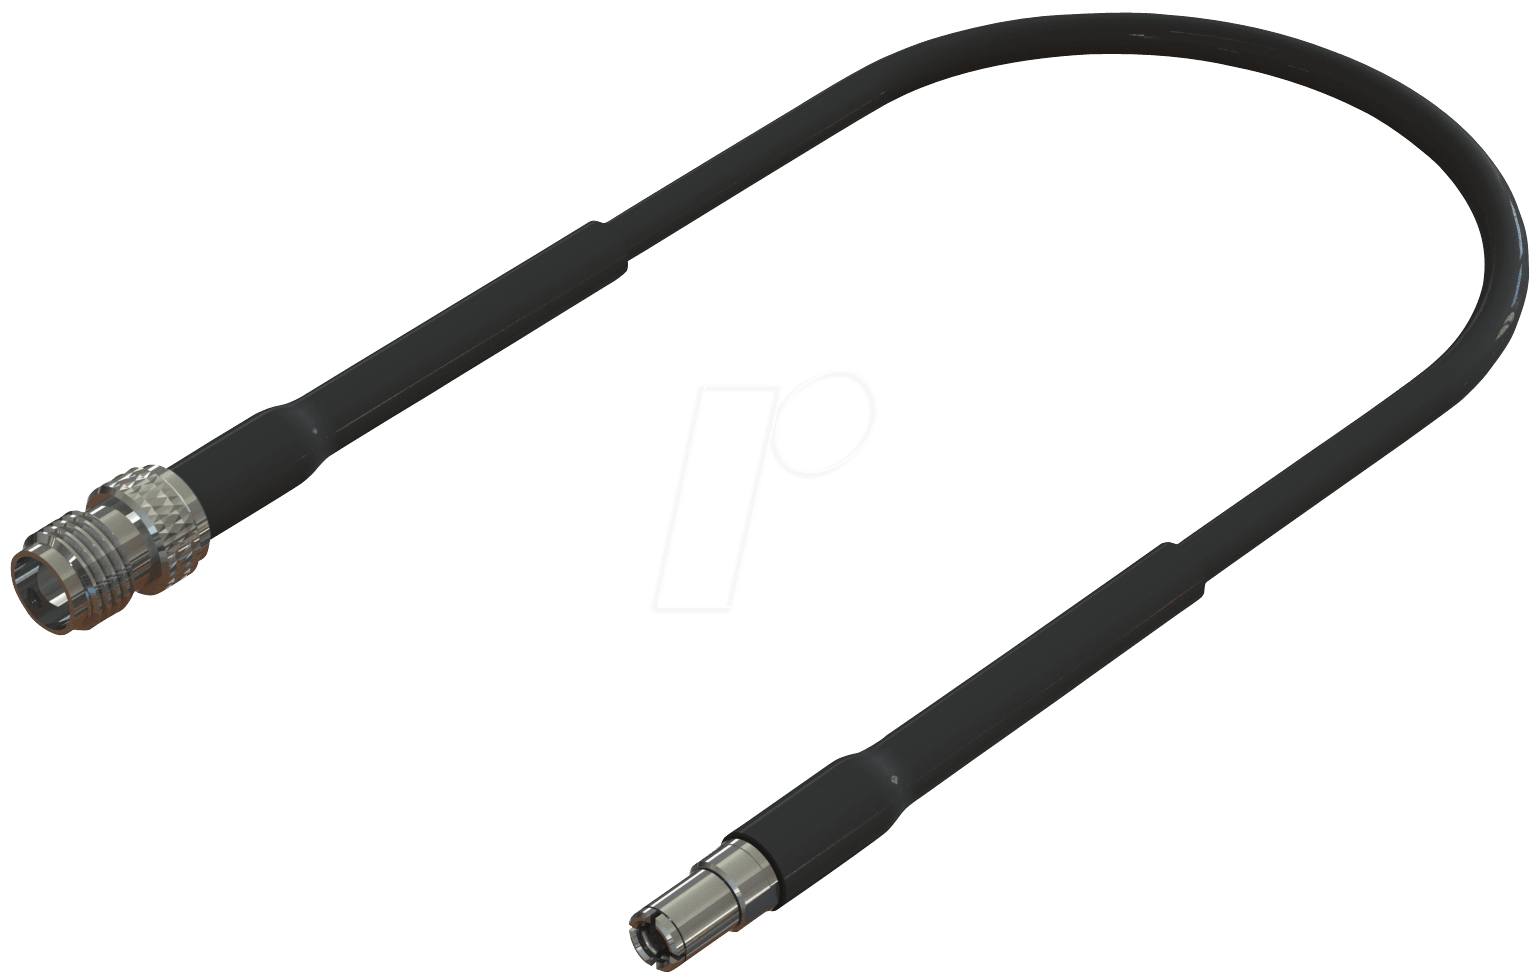 Ts9 Connector Dimensions Patch Lead With Ts9 Connector